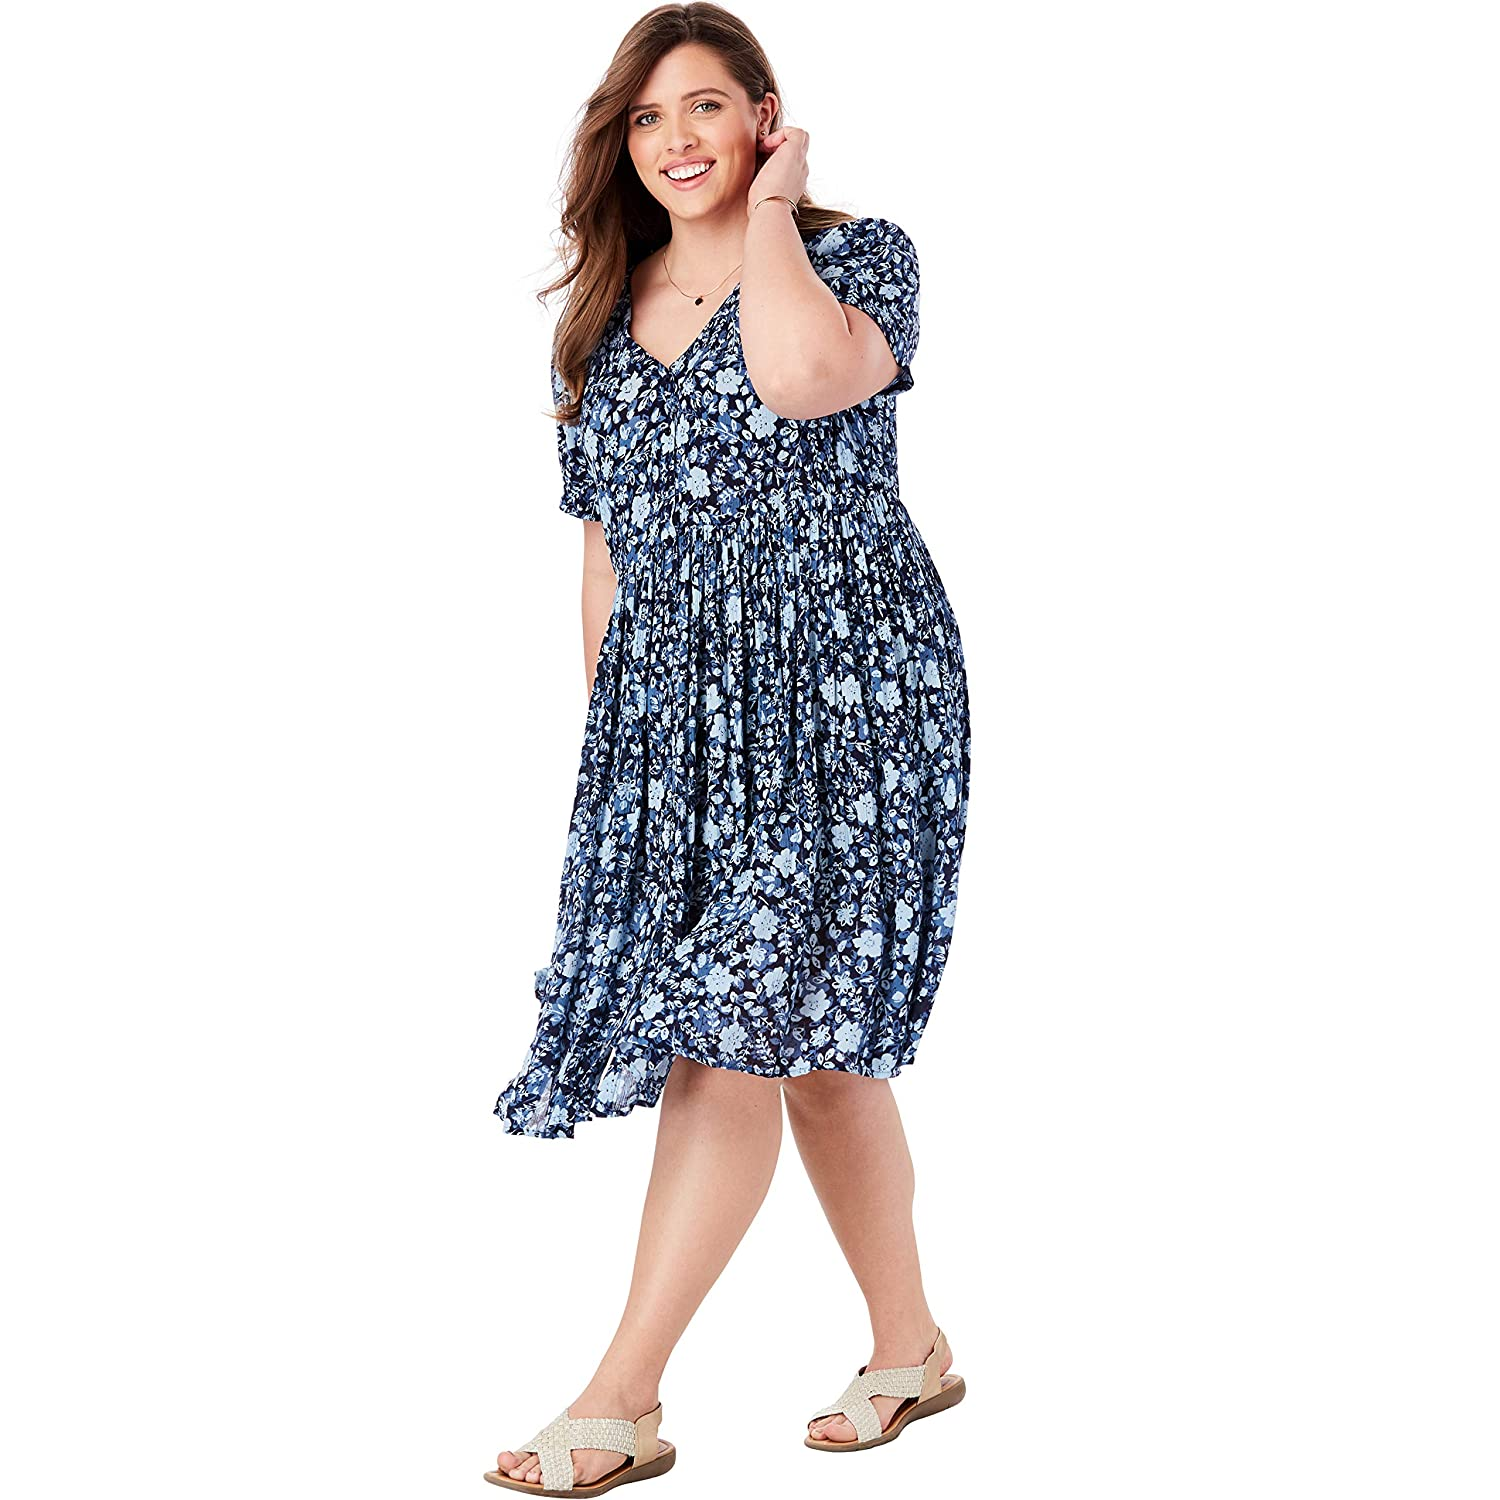 d234ce4cdca Woman Within Women s Plus Size Sleeveless Crinkle A-Line Dress at Amazon  Women s Clothing store